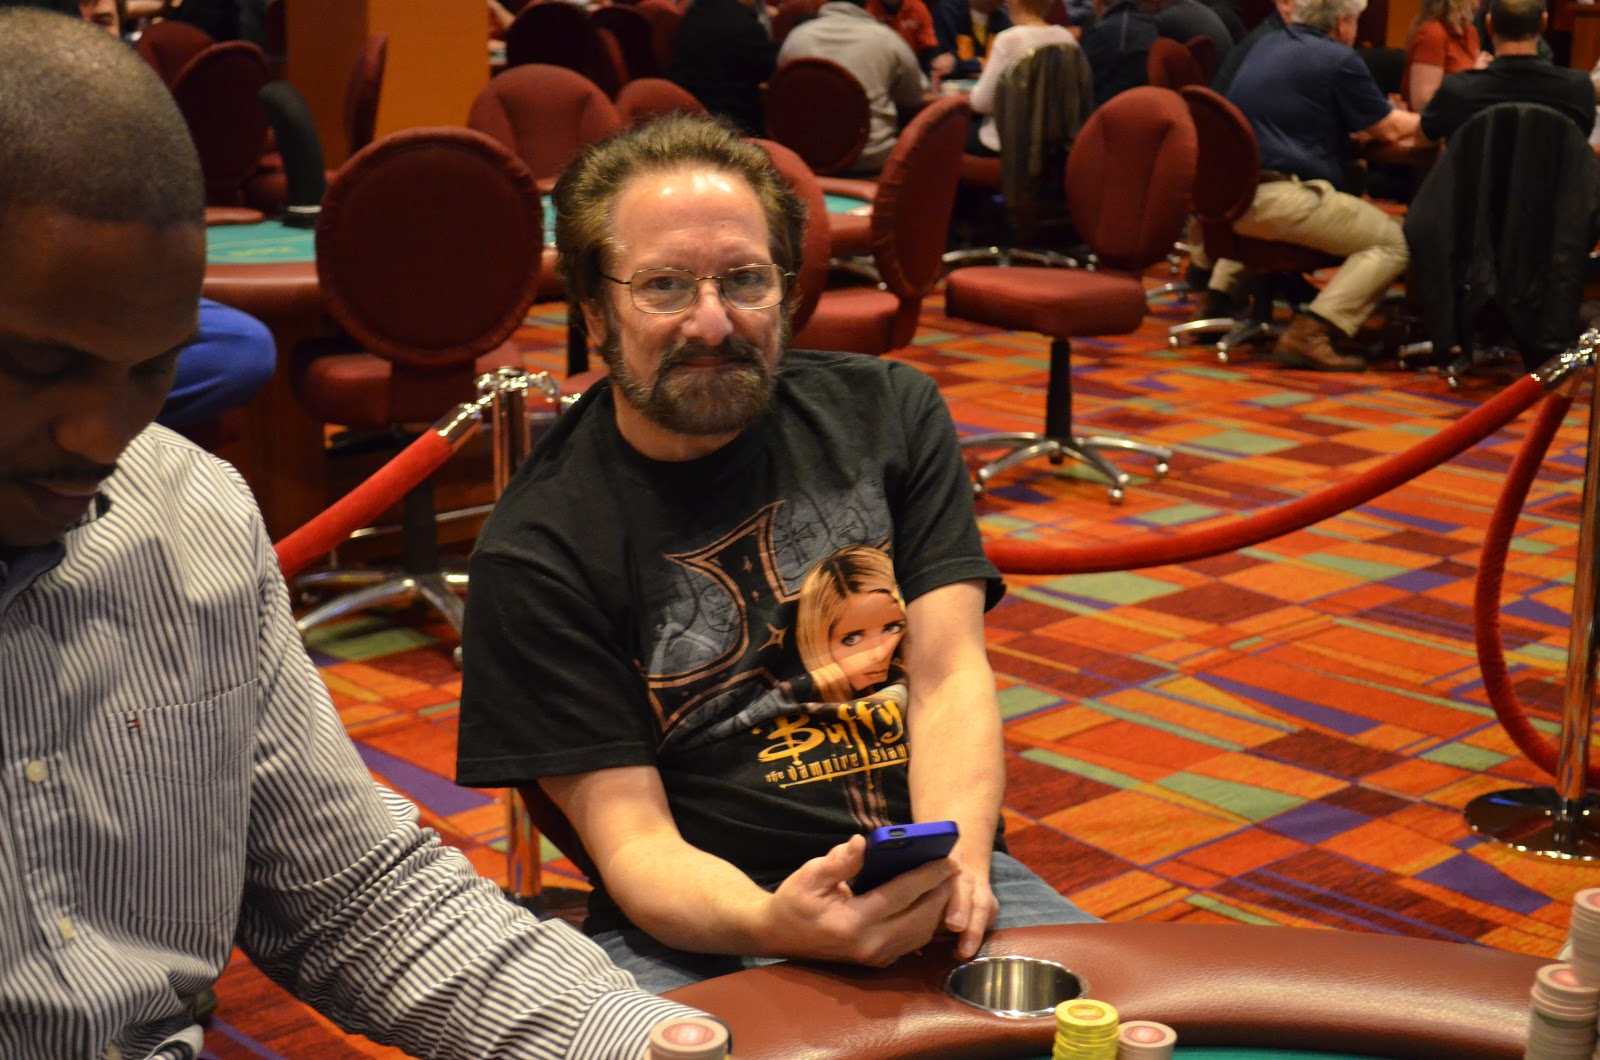 Parxbigstaxii big stax 300 day 3 5th place partenope 10 955 for Parx poker room live game report